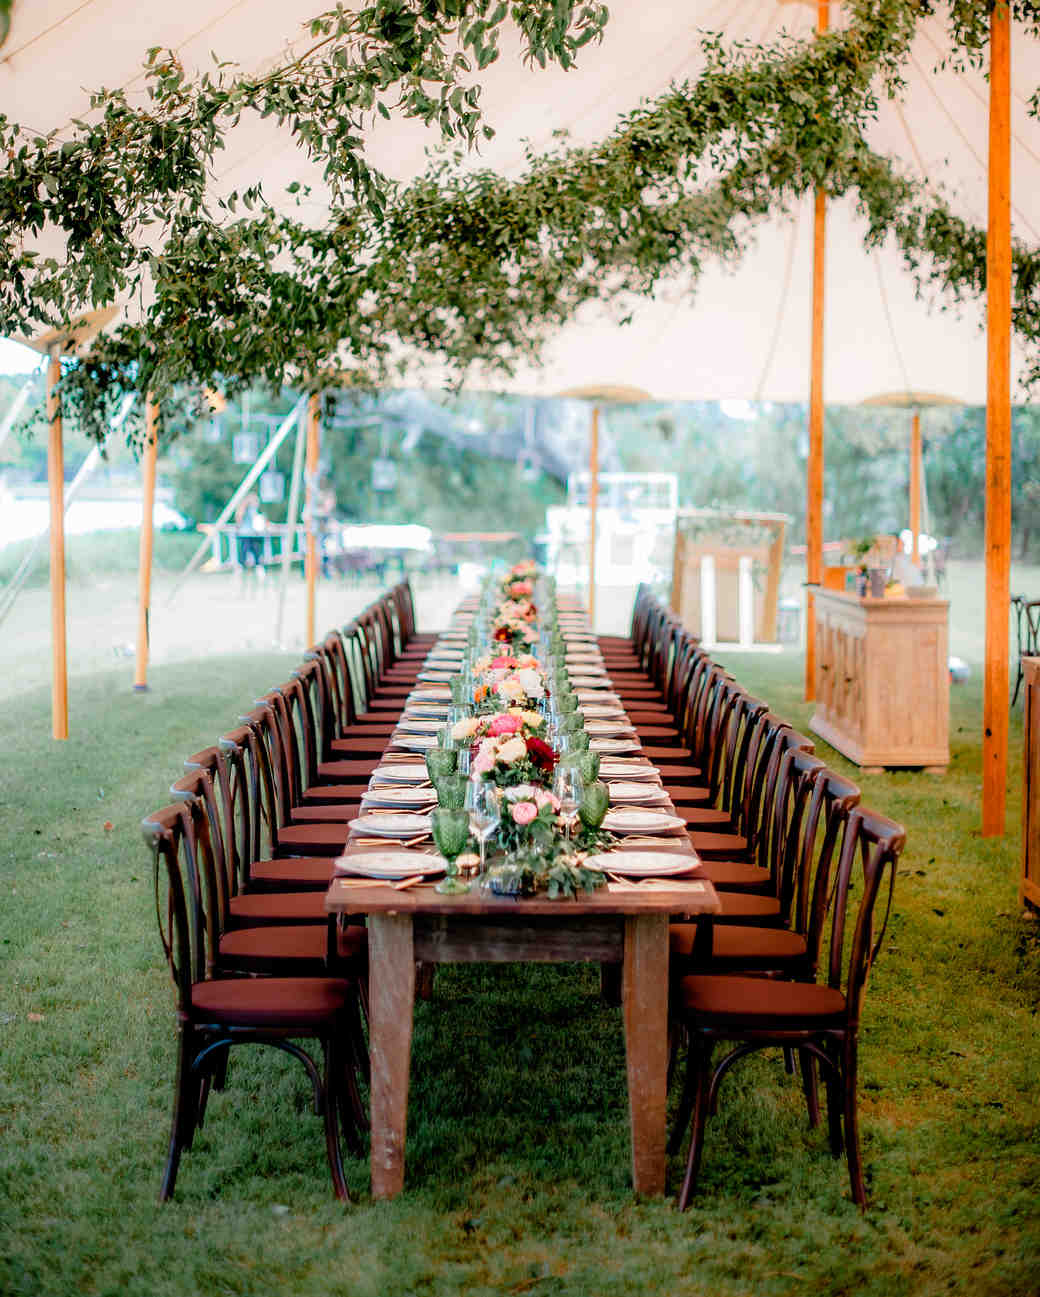 Wedding Tables Ideas: 42 Stunning Banquet Tables For Your Reception